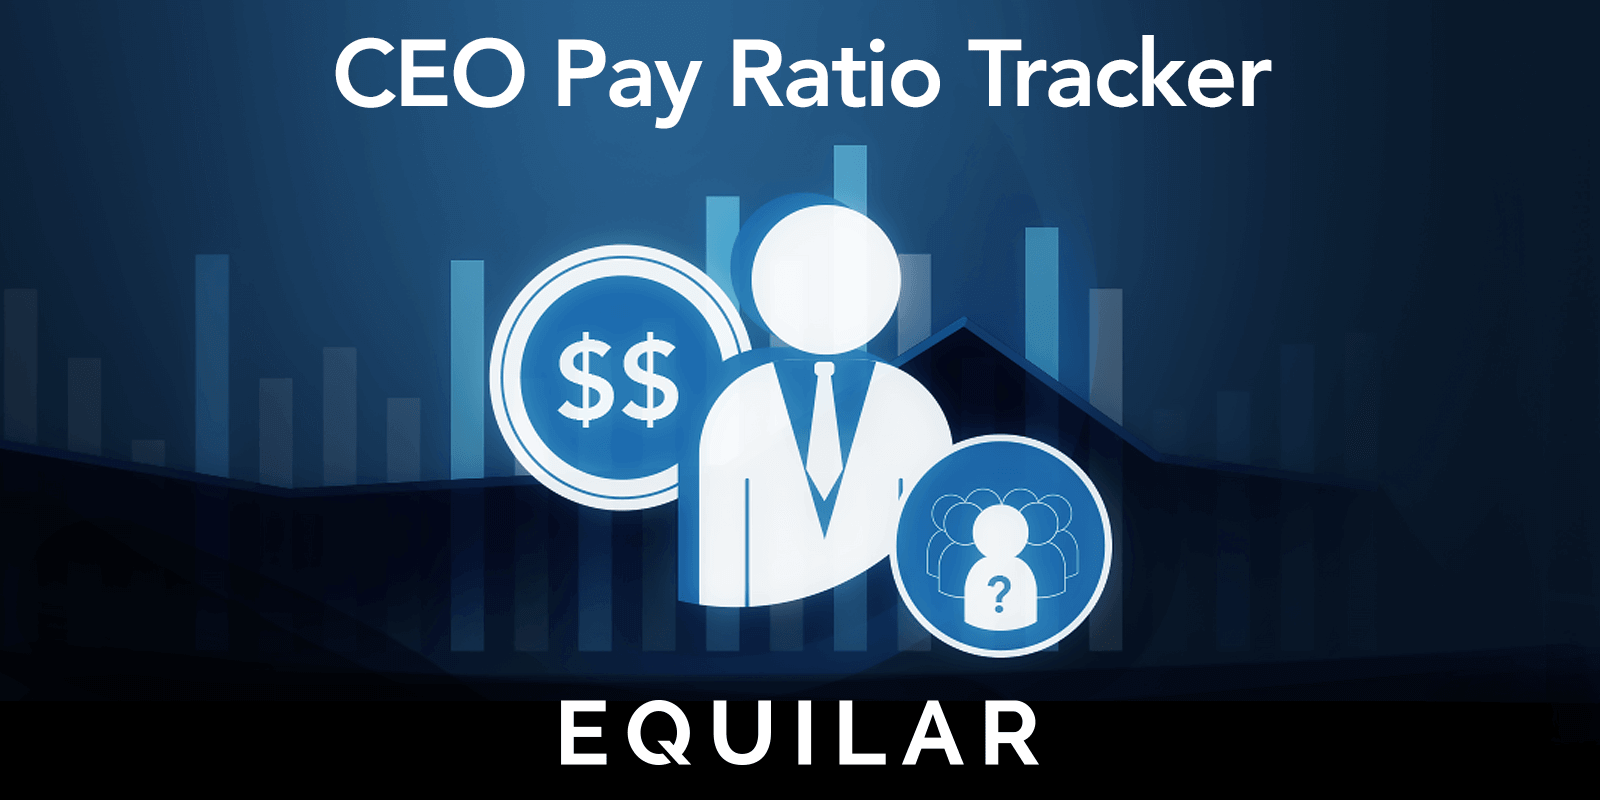 equilar the ceo pay ratio what we know right now